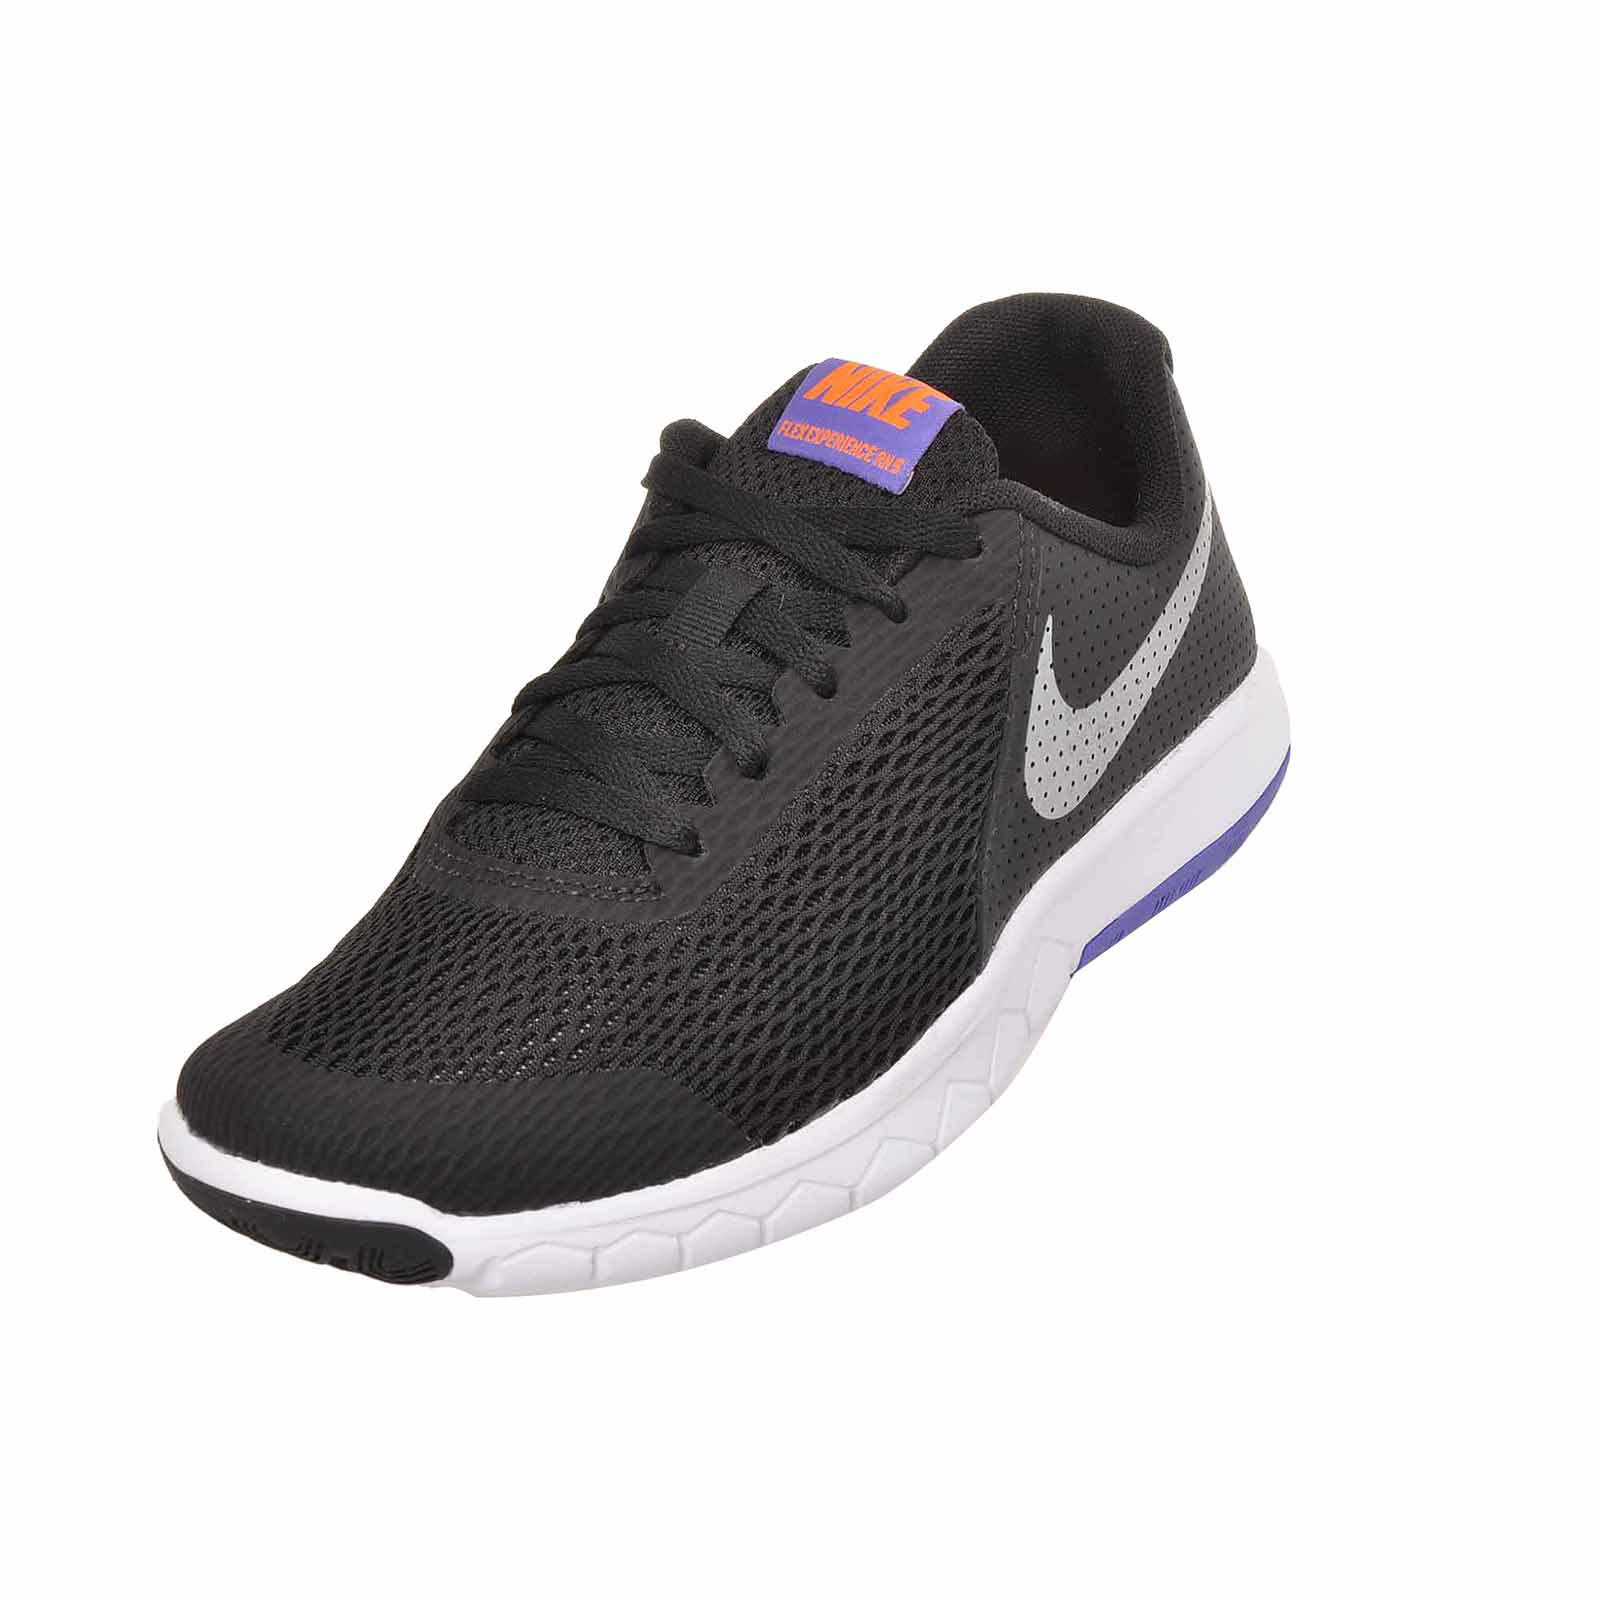 c9acf63a743e Nike Flex Experience 5 GS Running Shoes Black Kids Youth 844995-010 ...